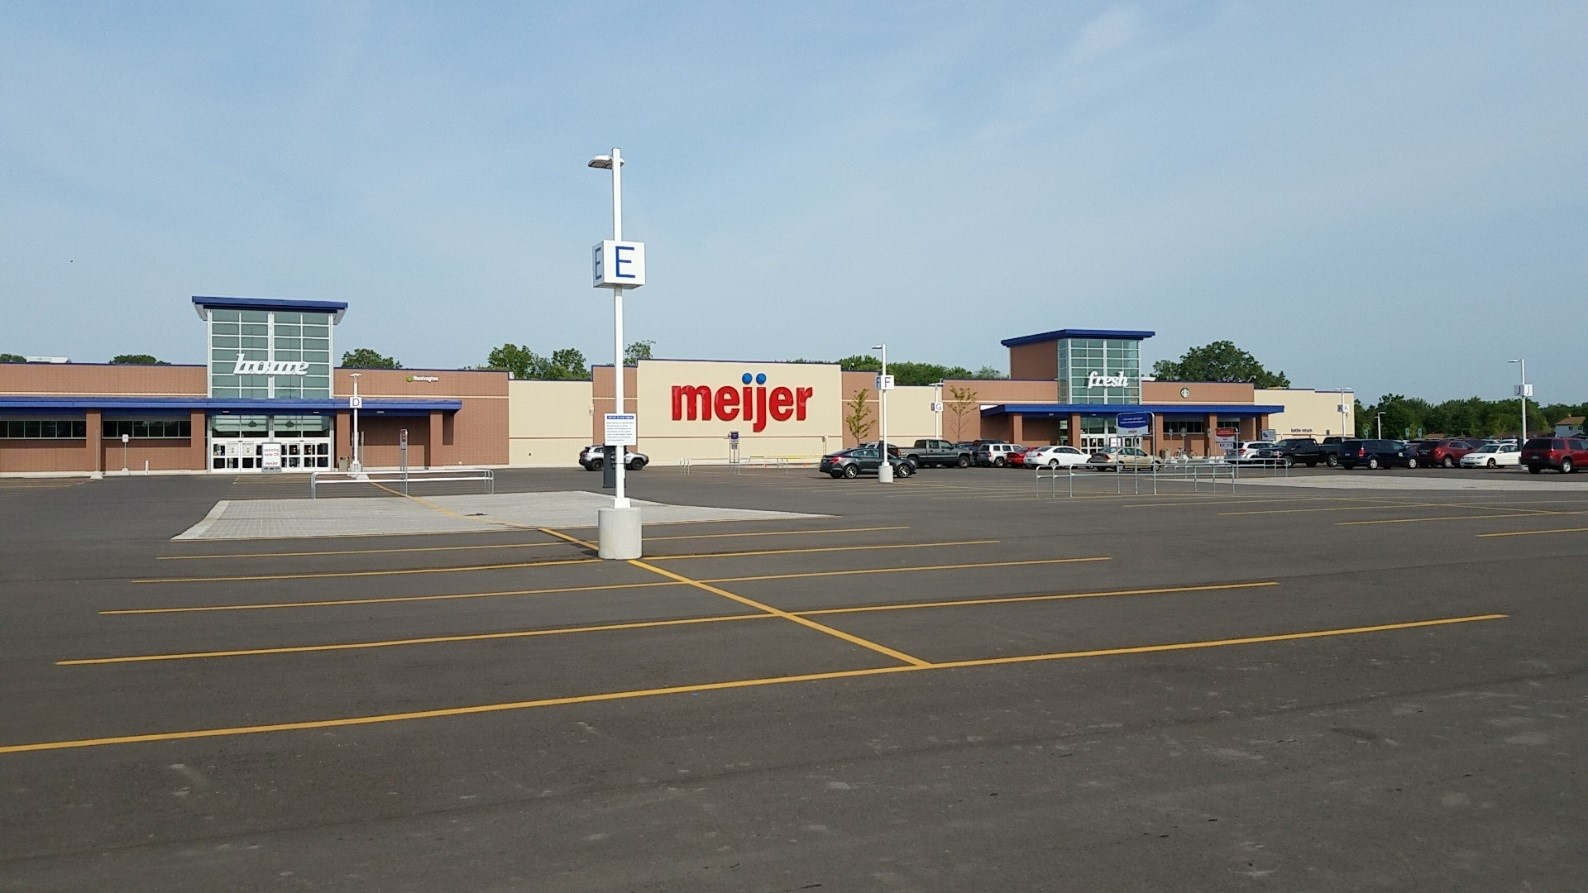 The new 159,000 square feet Meijer is located on a 21.5 acre site.